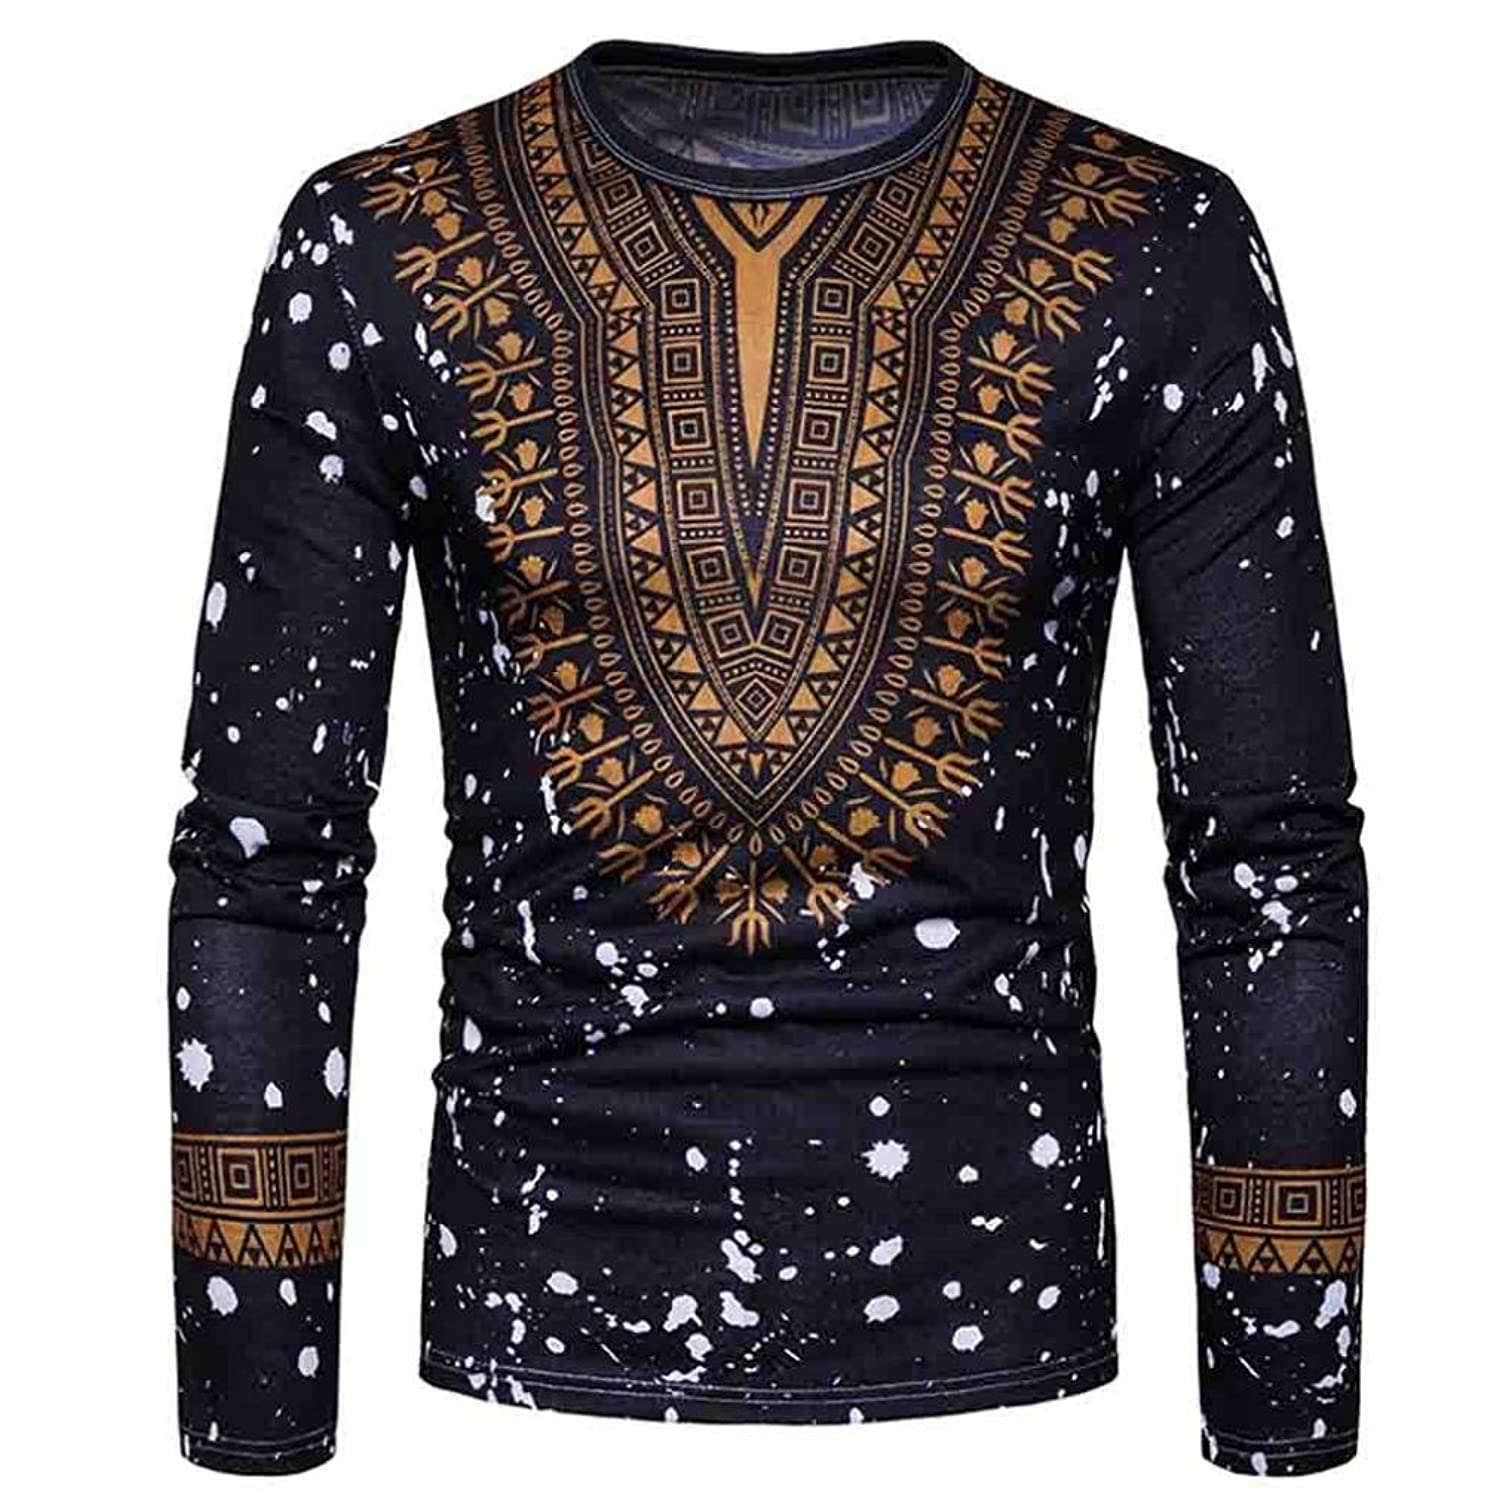 low priced ac35a be137 Fashion long sleeve floral print dashiki.tops,suitable for  casual,date,party,anywhere. African Dashiki Tribal Pattern Shortline T- shirts